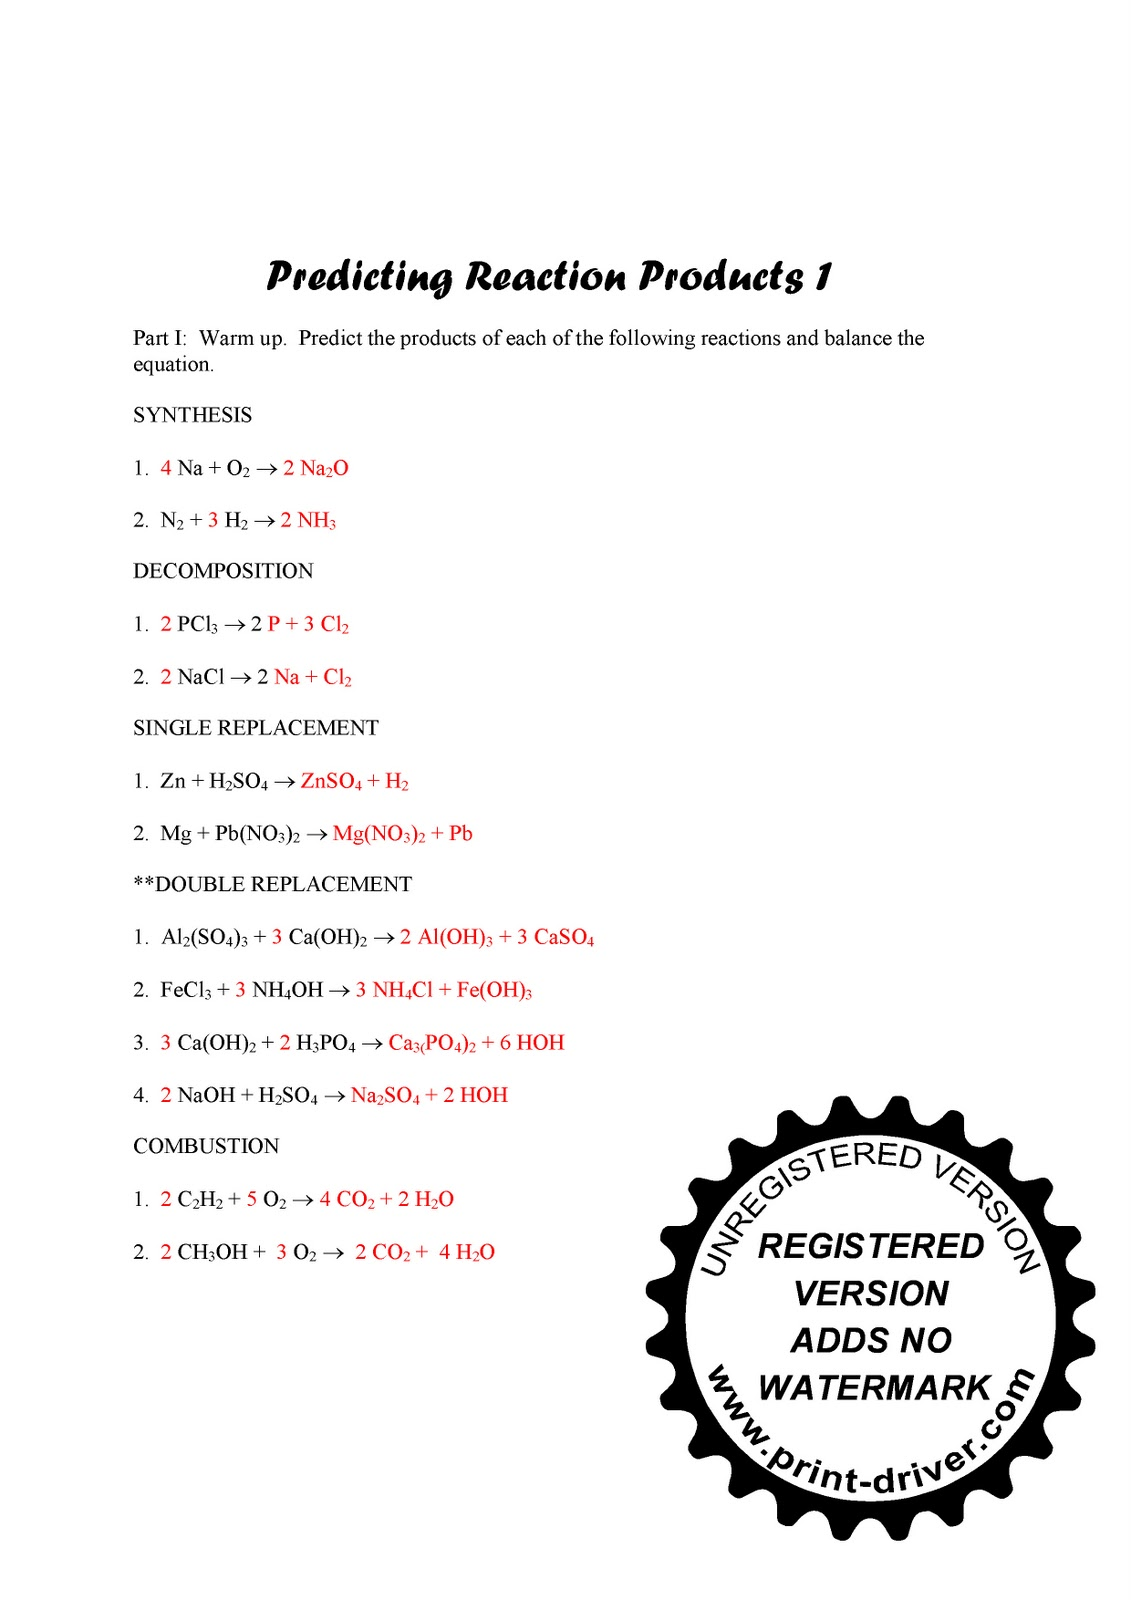 predicting chemical reactions worksheet free worksheets library download and print worksheets. Black Bedroom Furniture Sets. Home Design Ideas